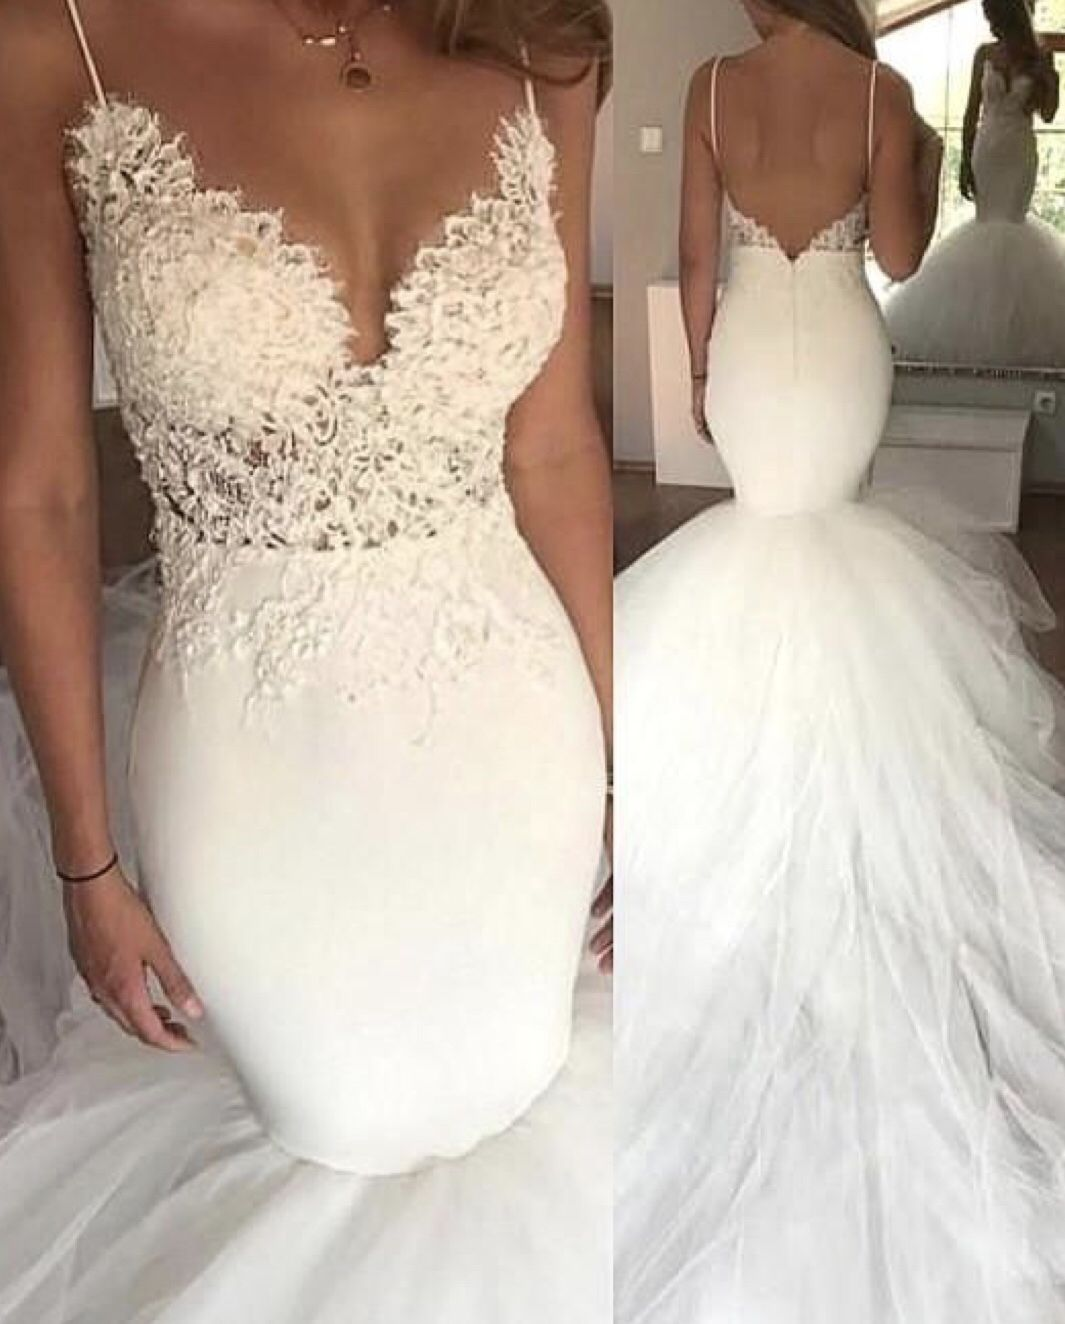 b67d5e57c5 Mermaid wedding dress fitted at Laura's boutique 22 rte52 carmel ny ...